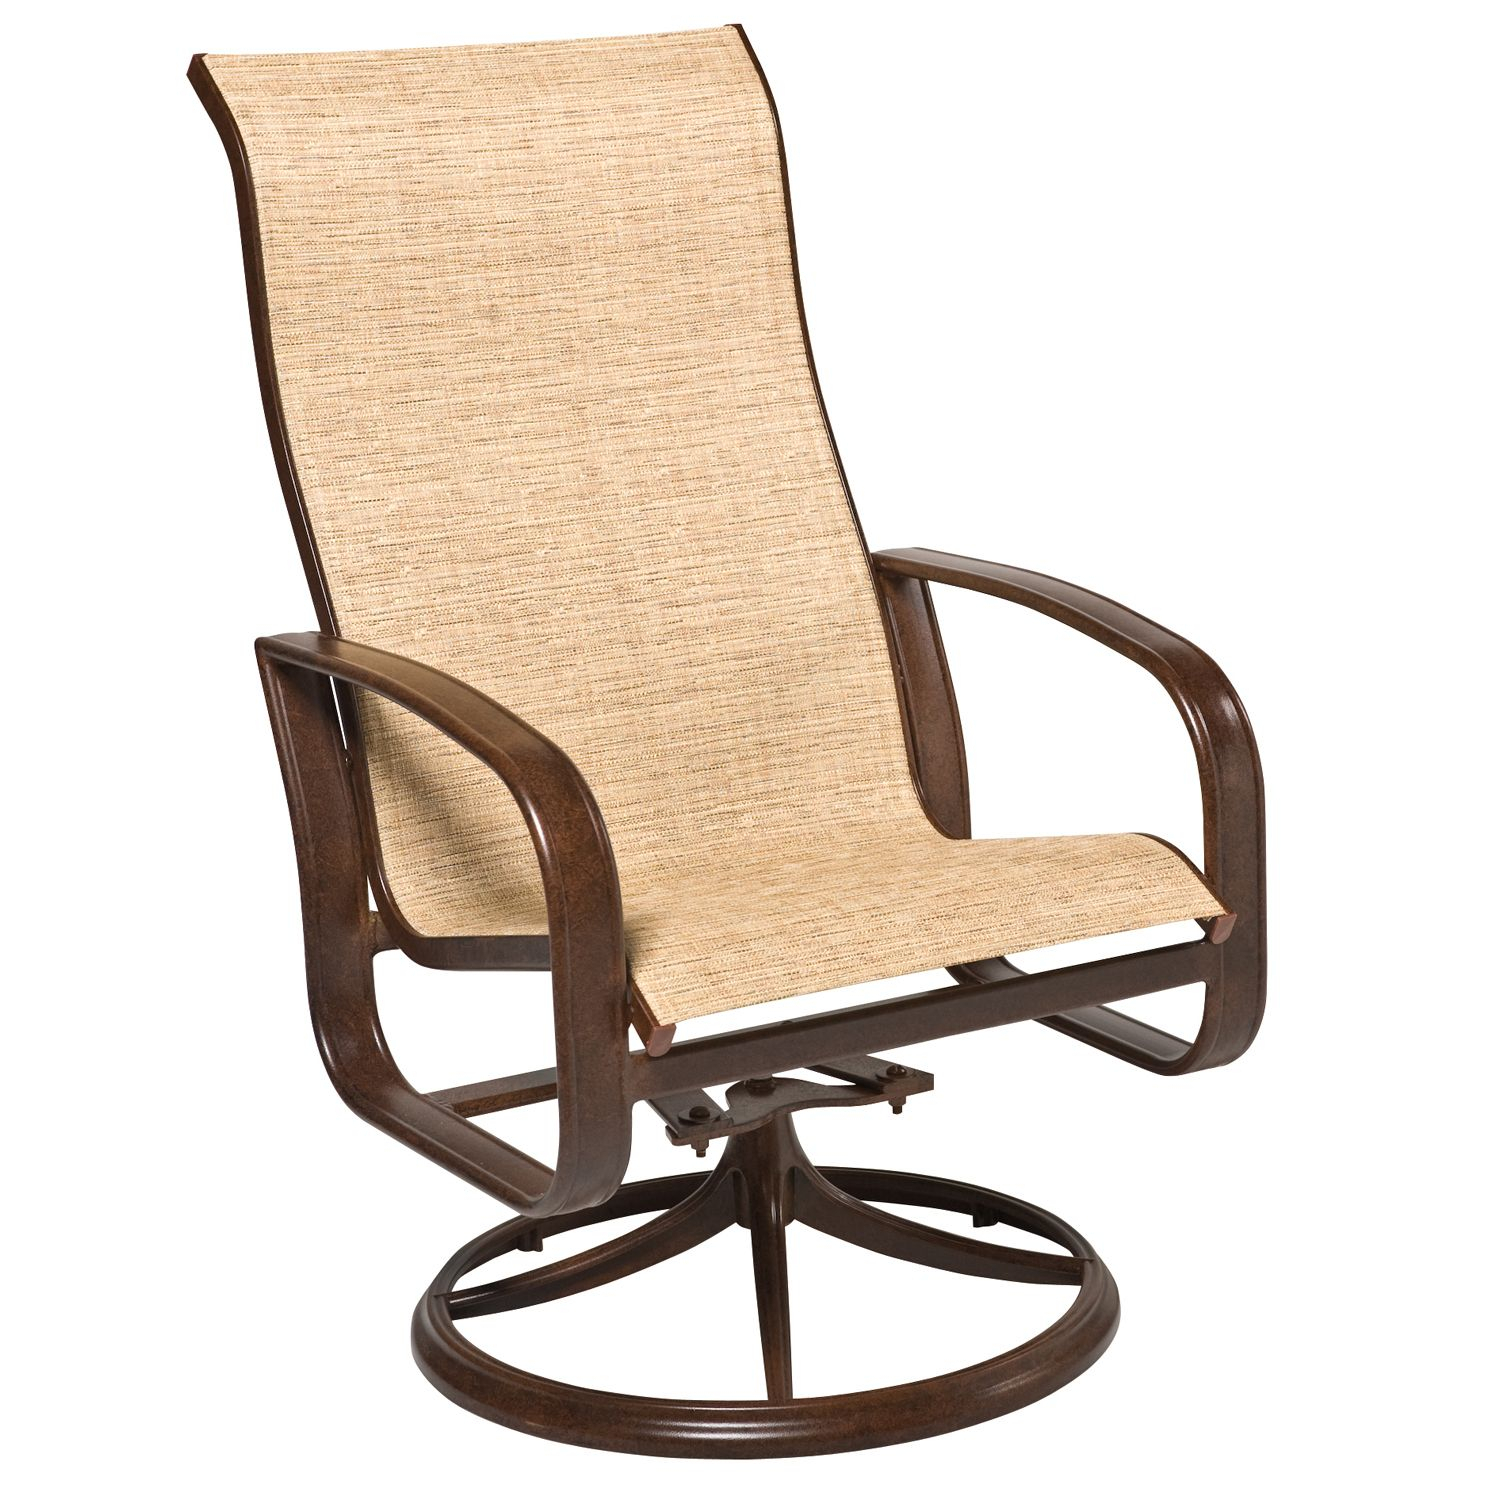 Cayman Isle Padded Sling High Back Swivel Rocking Dining Armchair Inside Sling High Back Swivel Chairs (View 5 of 25)